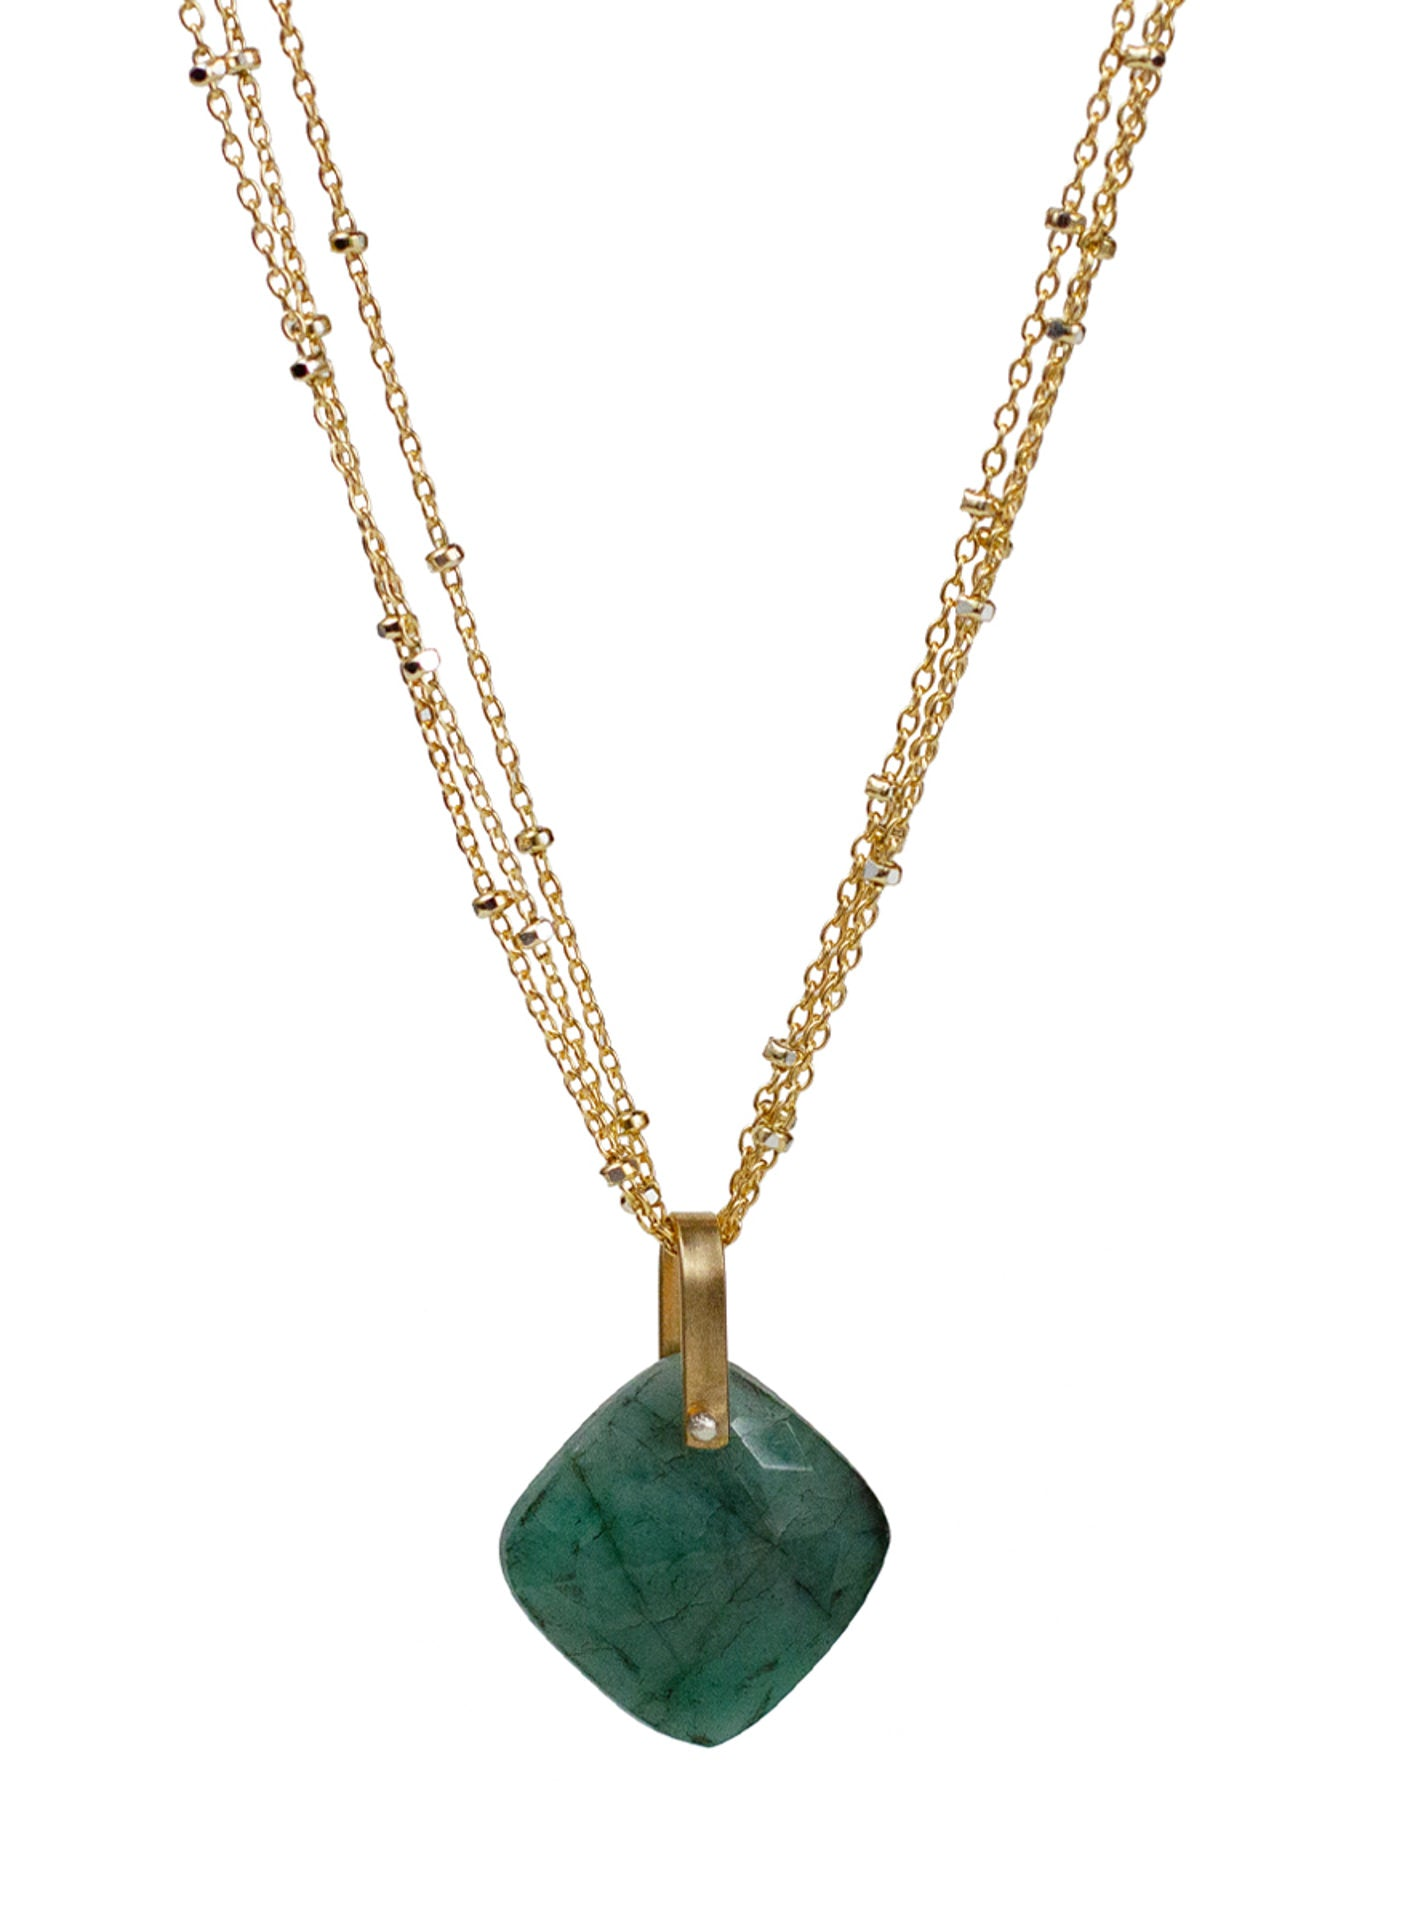 2020 Lulu Designs Hera Necklace 14k Gold Fill Emerald